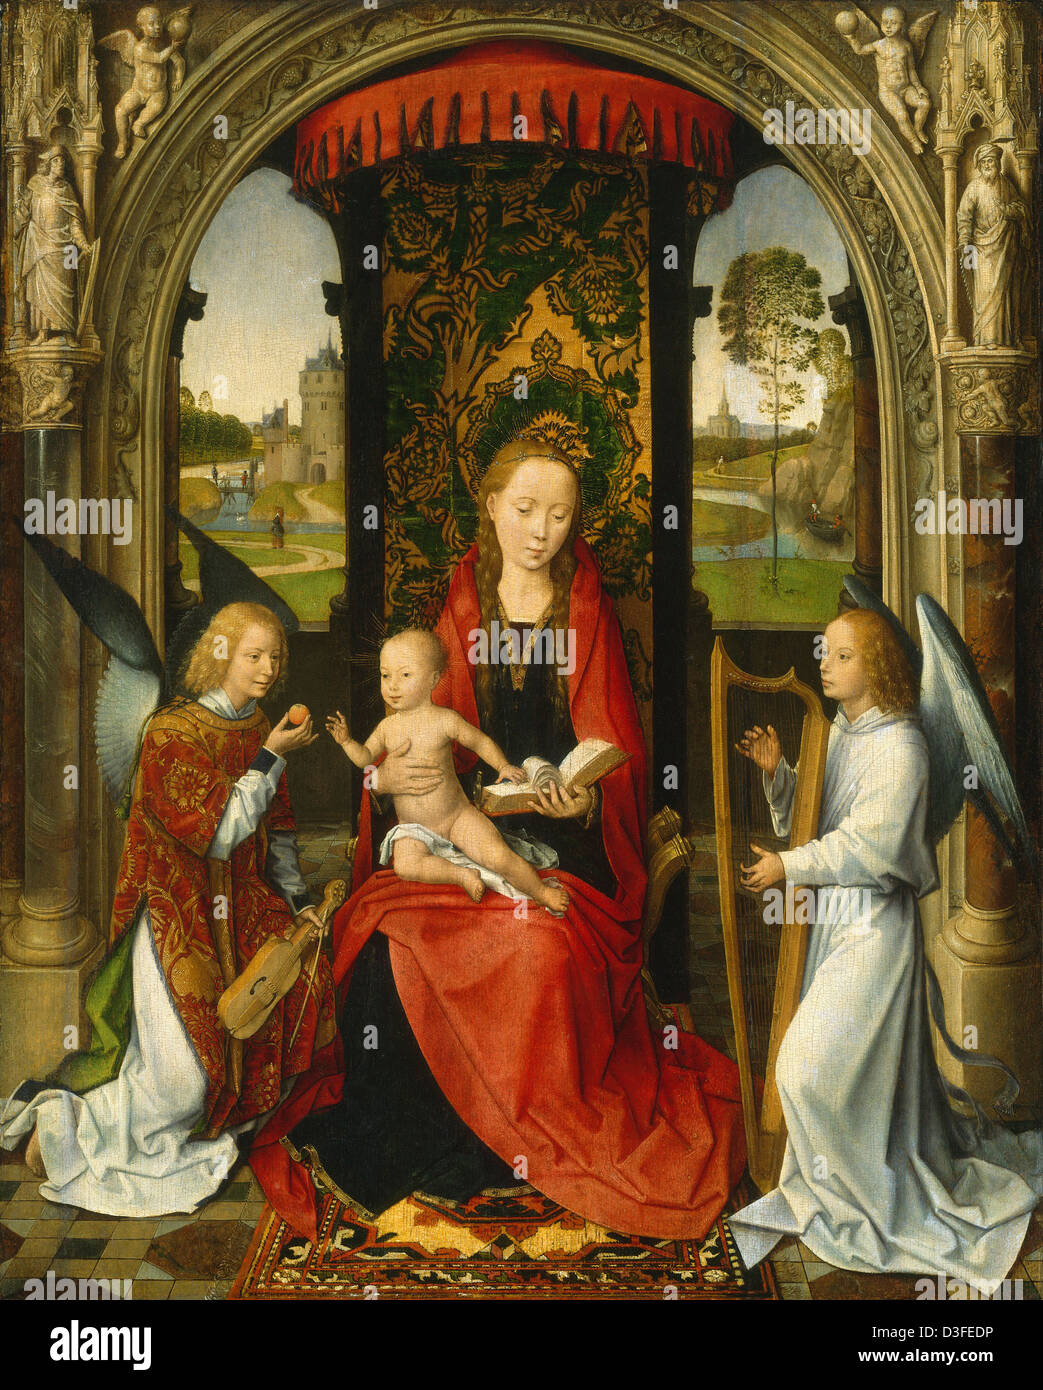 Hans Memling, Madonna and Child with Angels, Netherlandish, active c. 1465 - 1494, after 1479, oil on panel - Stock Image